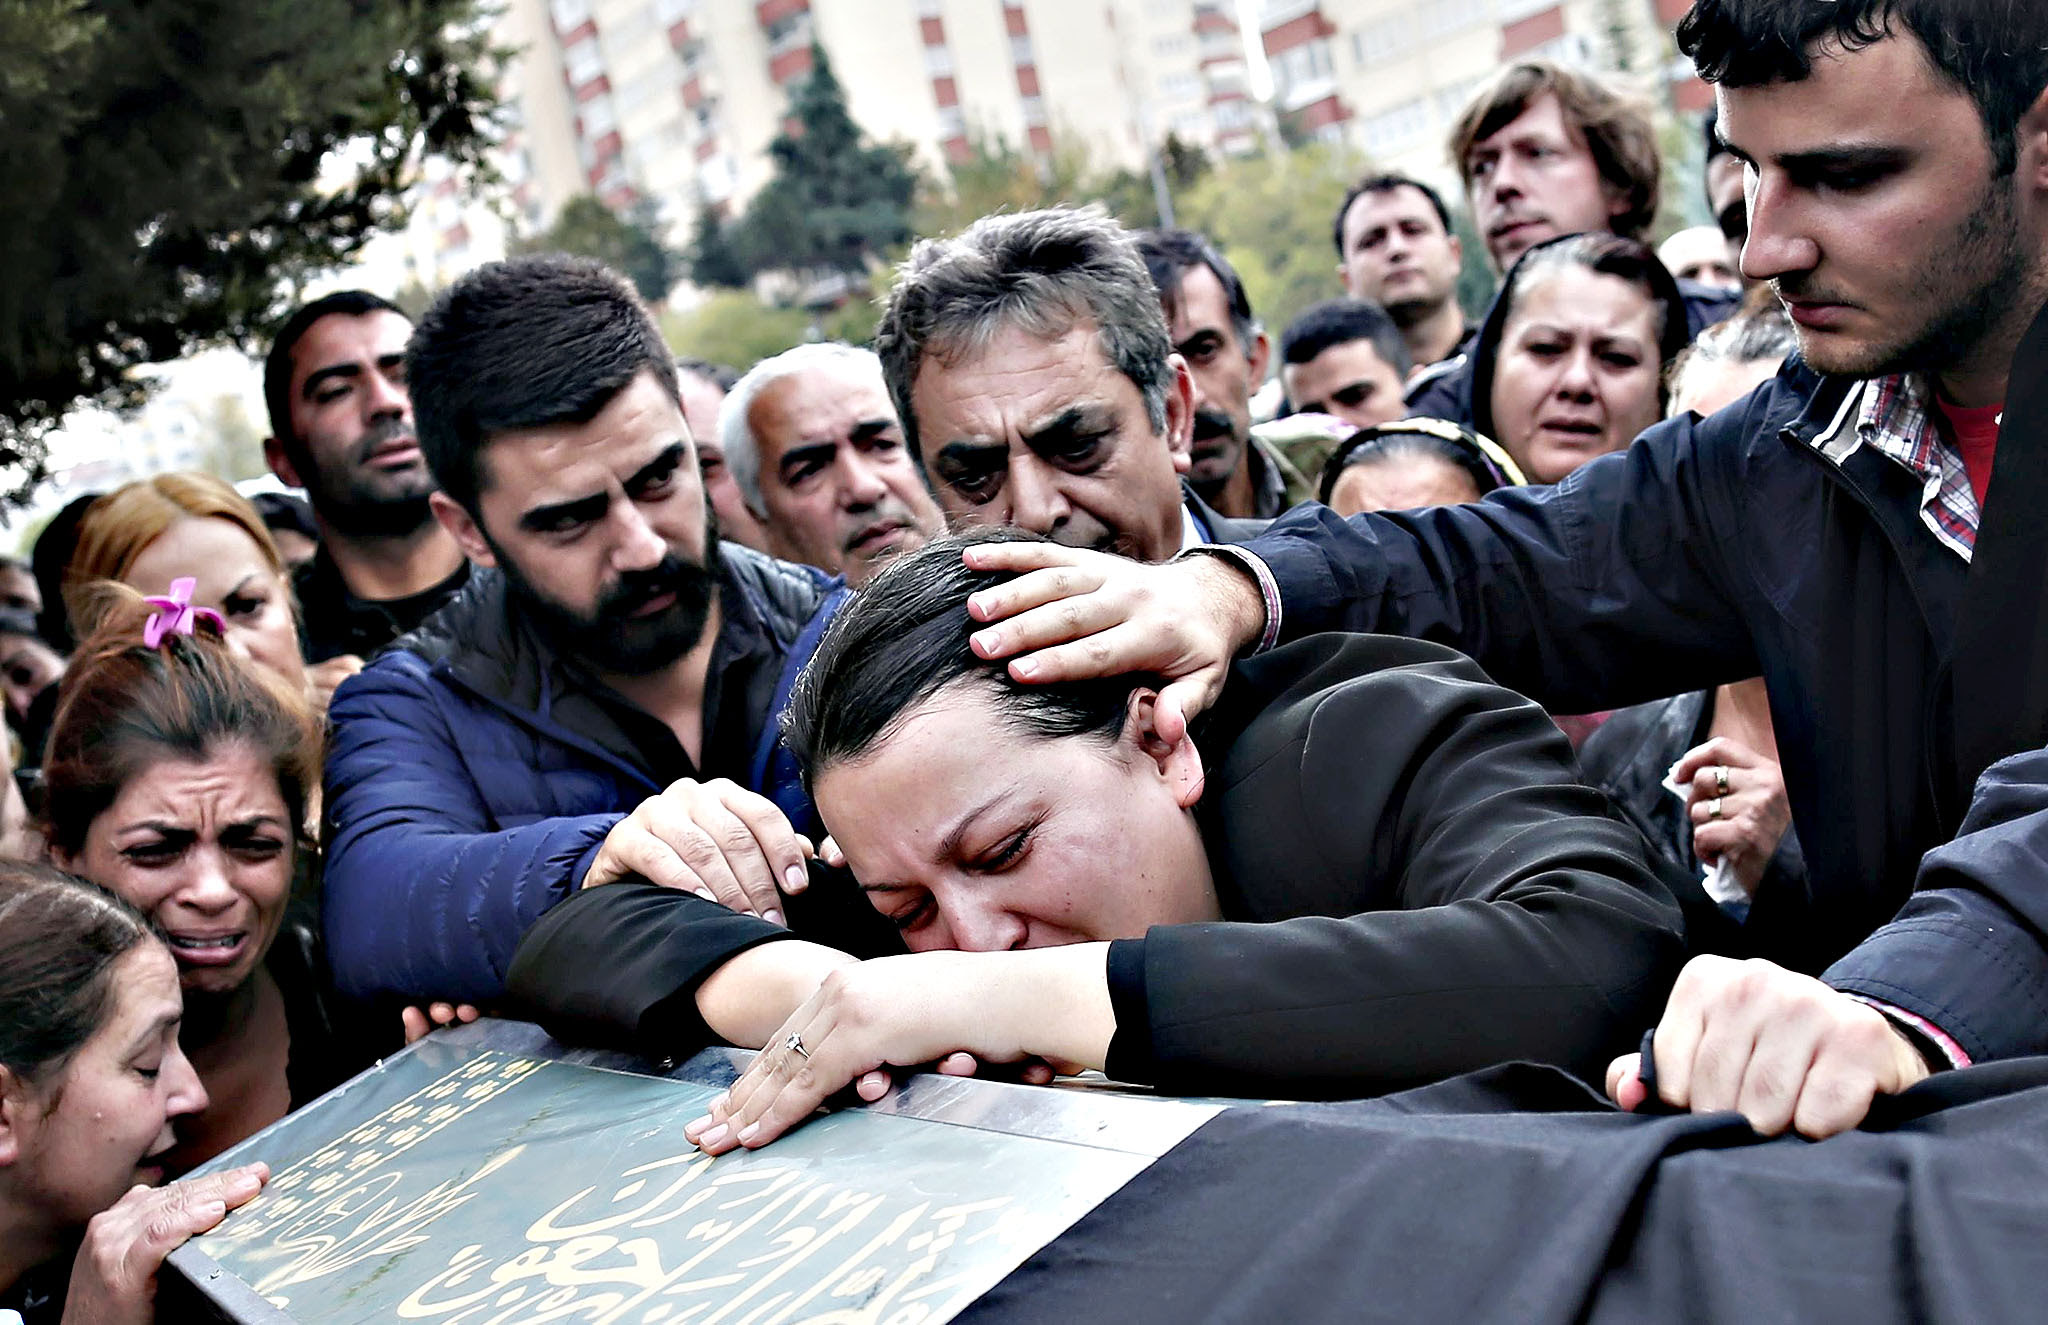 Relatives of Uygar Coskun, who was killed the previous day in a twin blast in Ankara, mourn over his coffin during a funeral ceremony in Ankara, Turkey, 12 October 2015. Mourners anxiously began to gather to commemorate the 95 people killed in twin blasts the previous day at a pro-Kurdish peace rally, the worst attack in Turkey's modern history. No group claimed responsibility for the attack, which came three weeks before snap general elections set for 01 November and the G20 heads-of-government summit later next month, raising security concerns.